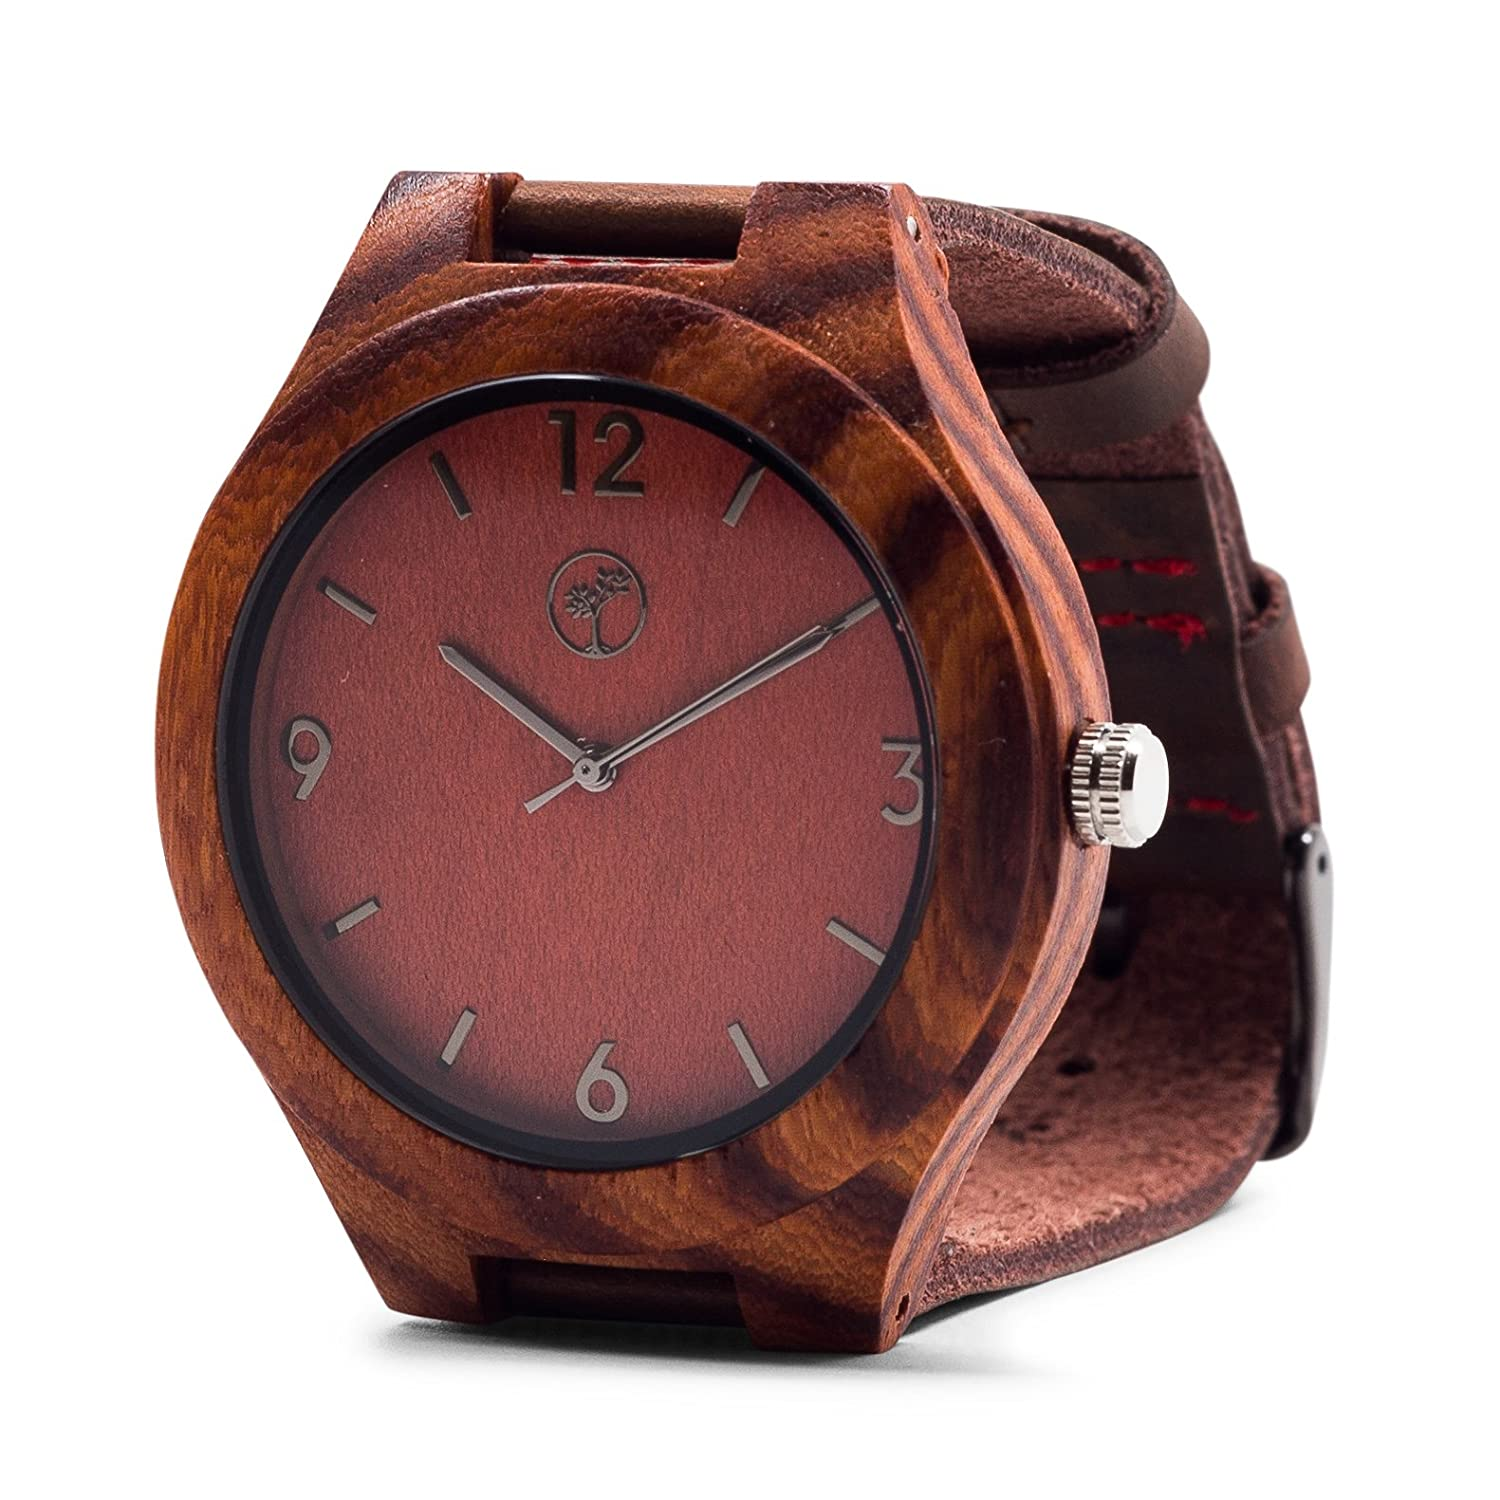 woodwatch in rosewood friendly leather headpeace with watches the and watch black eco sandalwood products red wood gampen